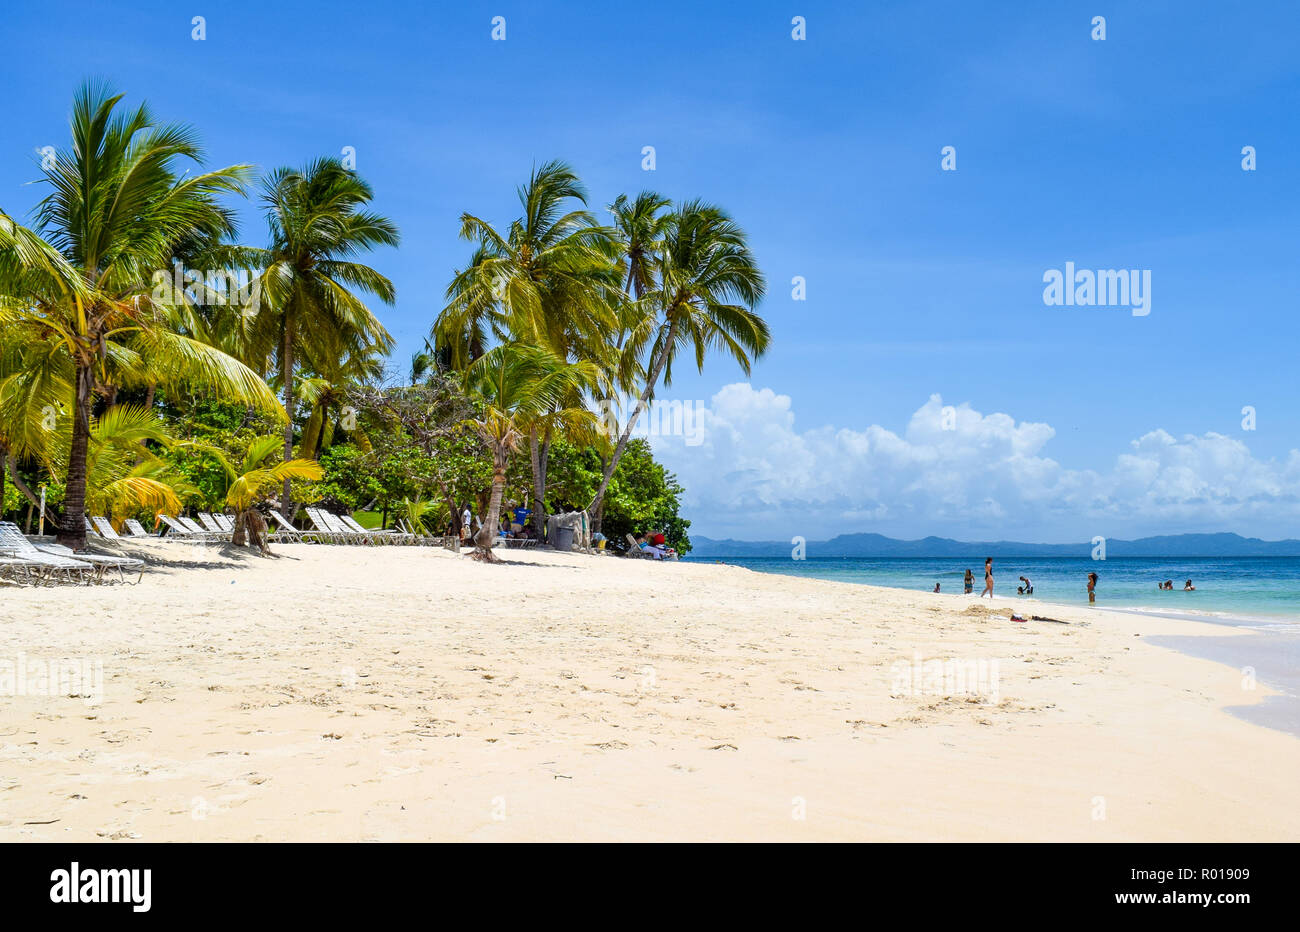 Paradise beach in caribbean sea, white beach, plams and turquoise ocean, some tourists at the beach in the dominican republic - Stock Image